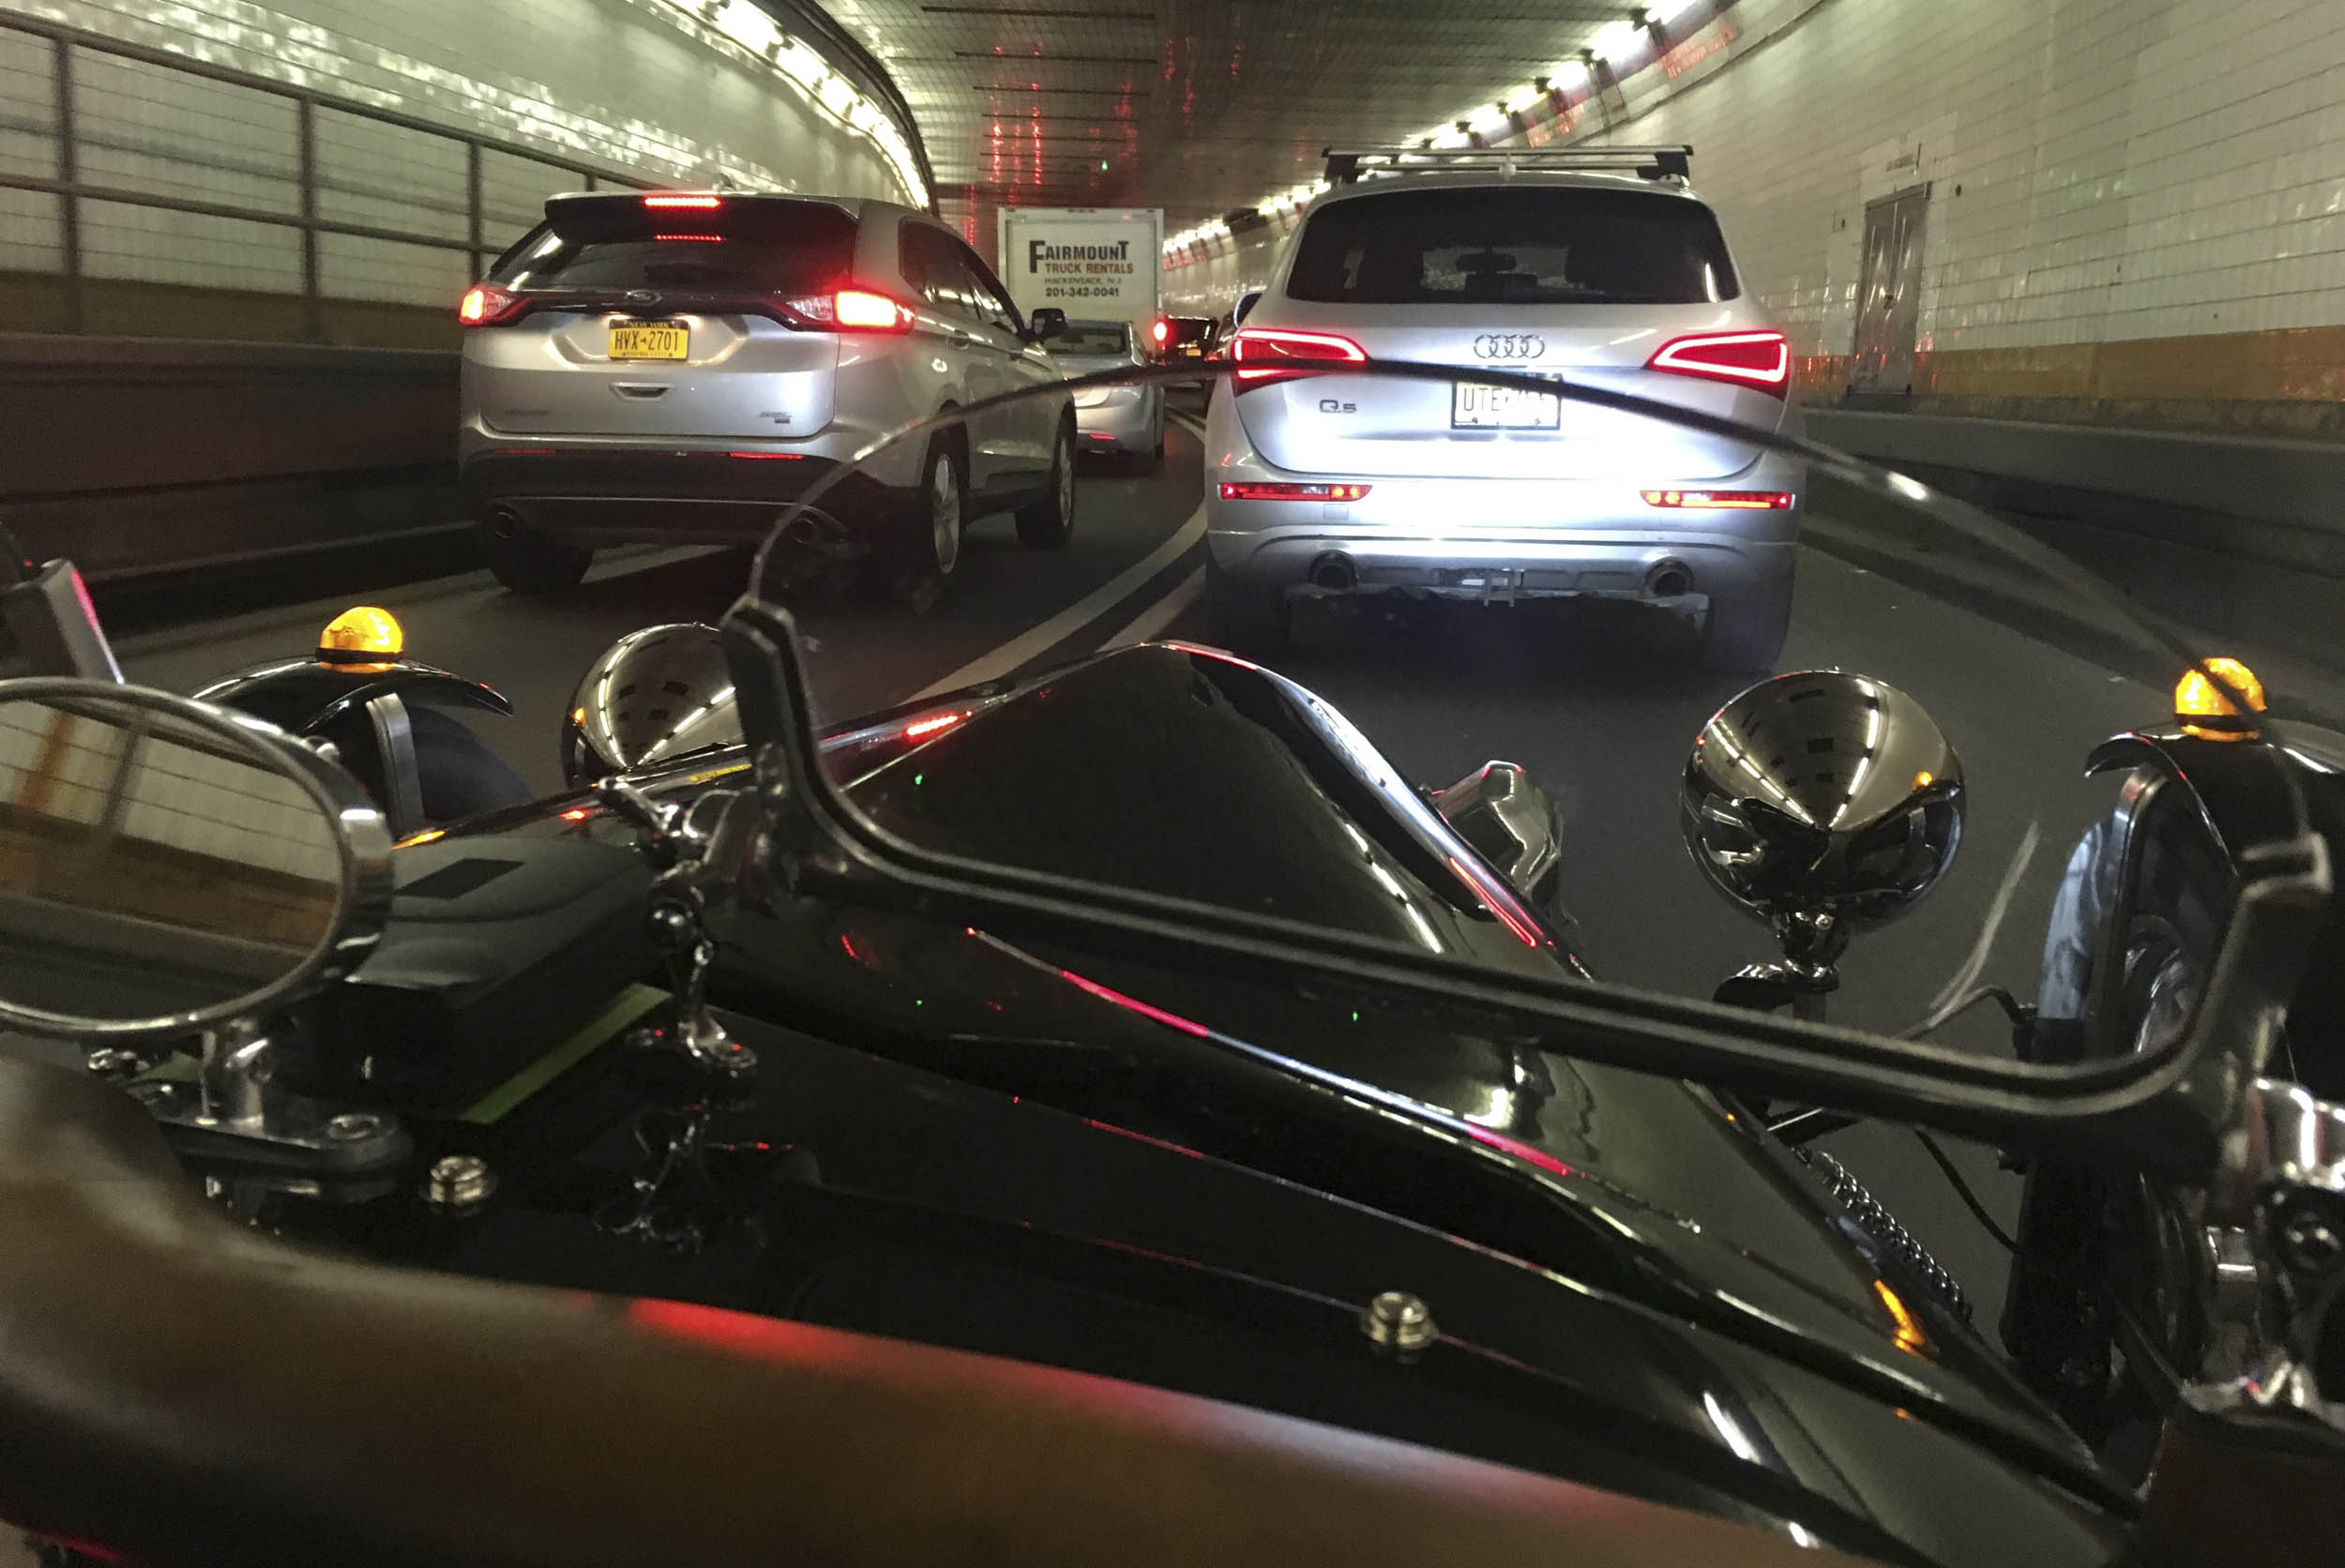 stuck in traffic in a tunnel